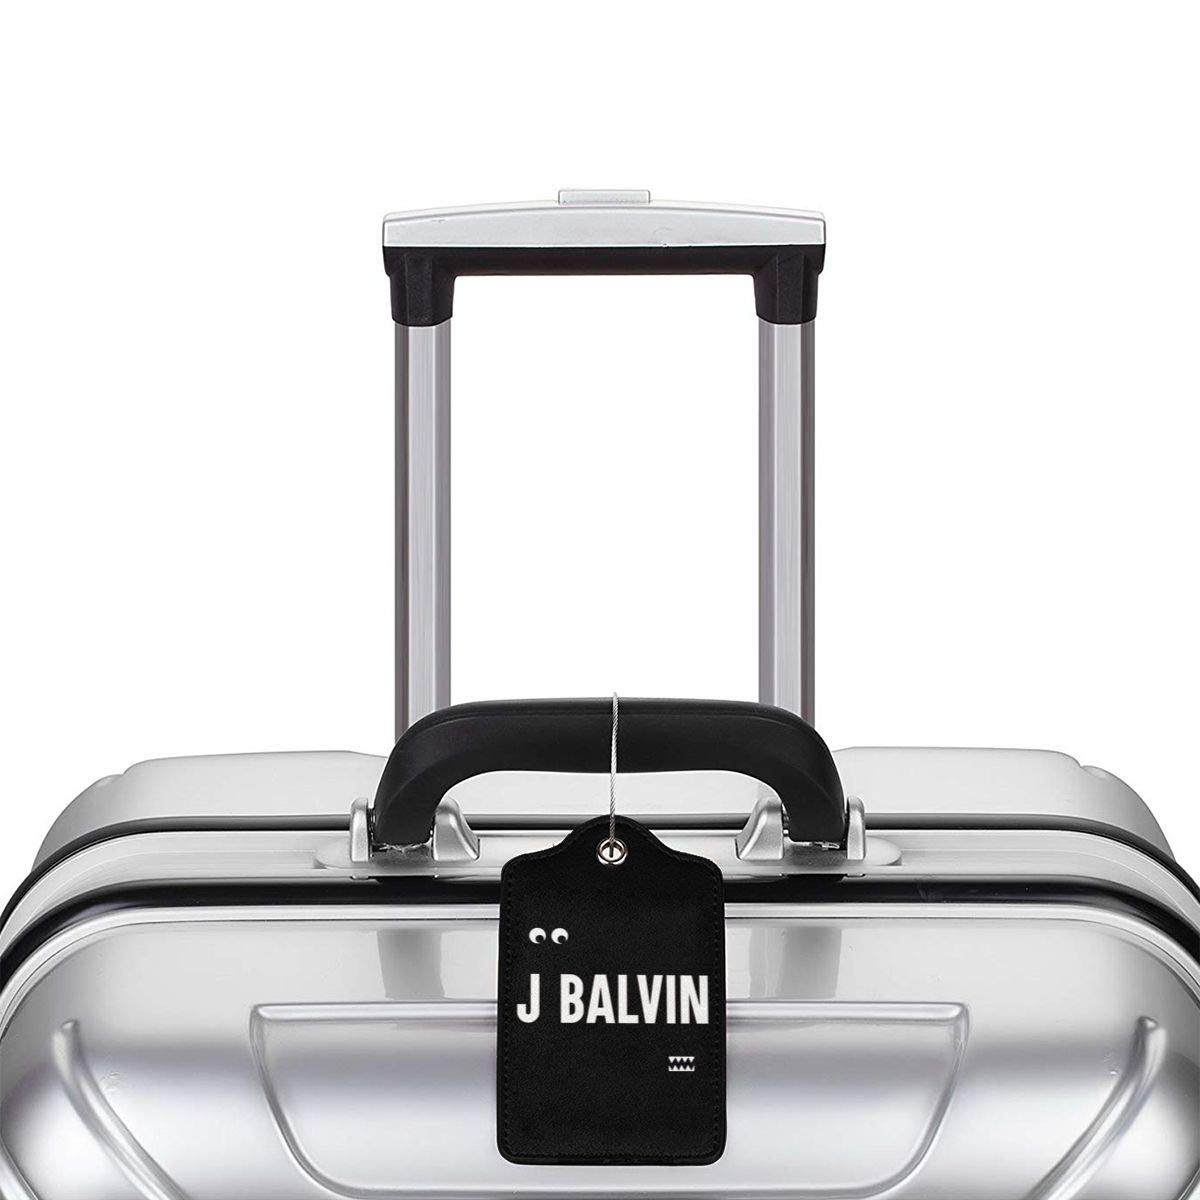 J Balvin Vibras Leather Luggage Tag Travel ID Label For Baggage Suitcase